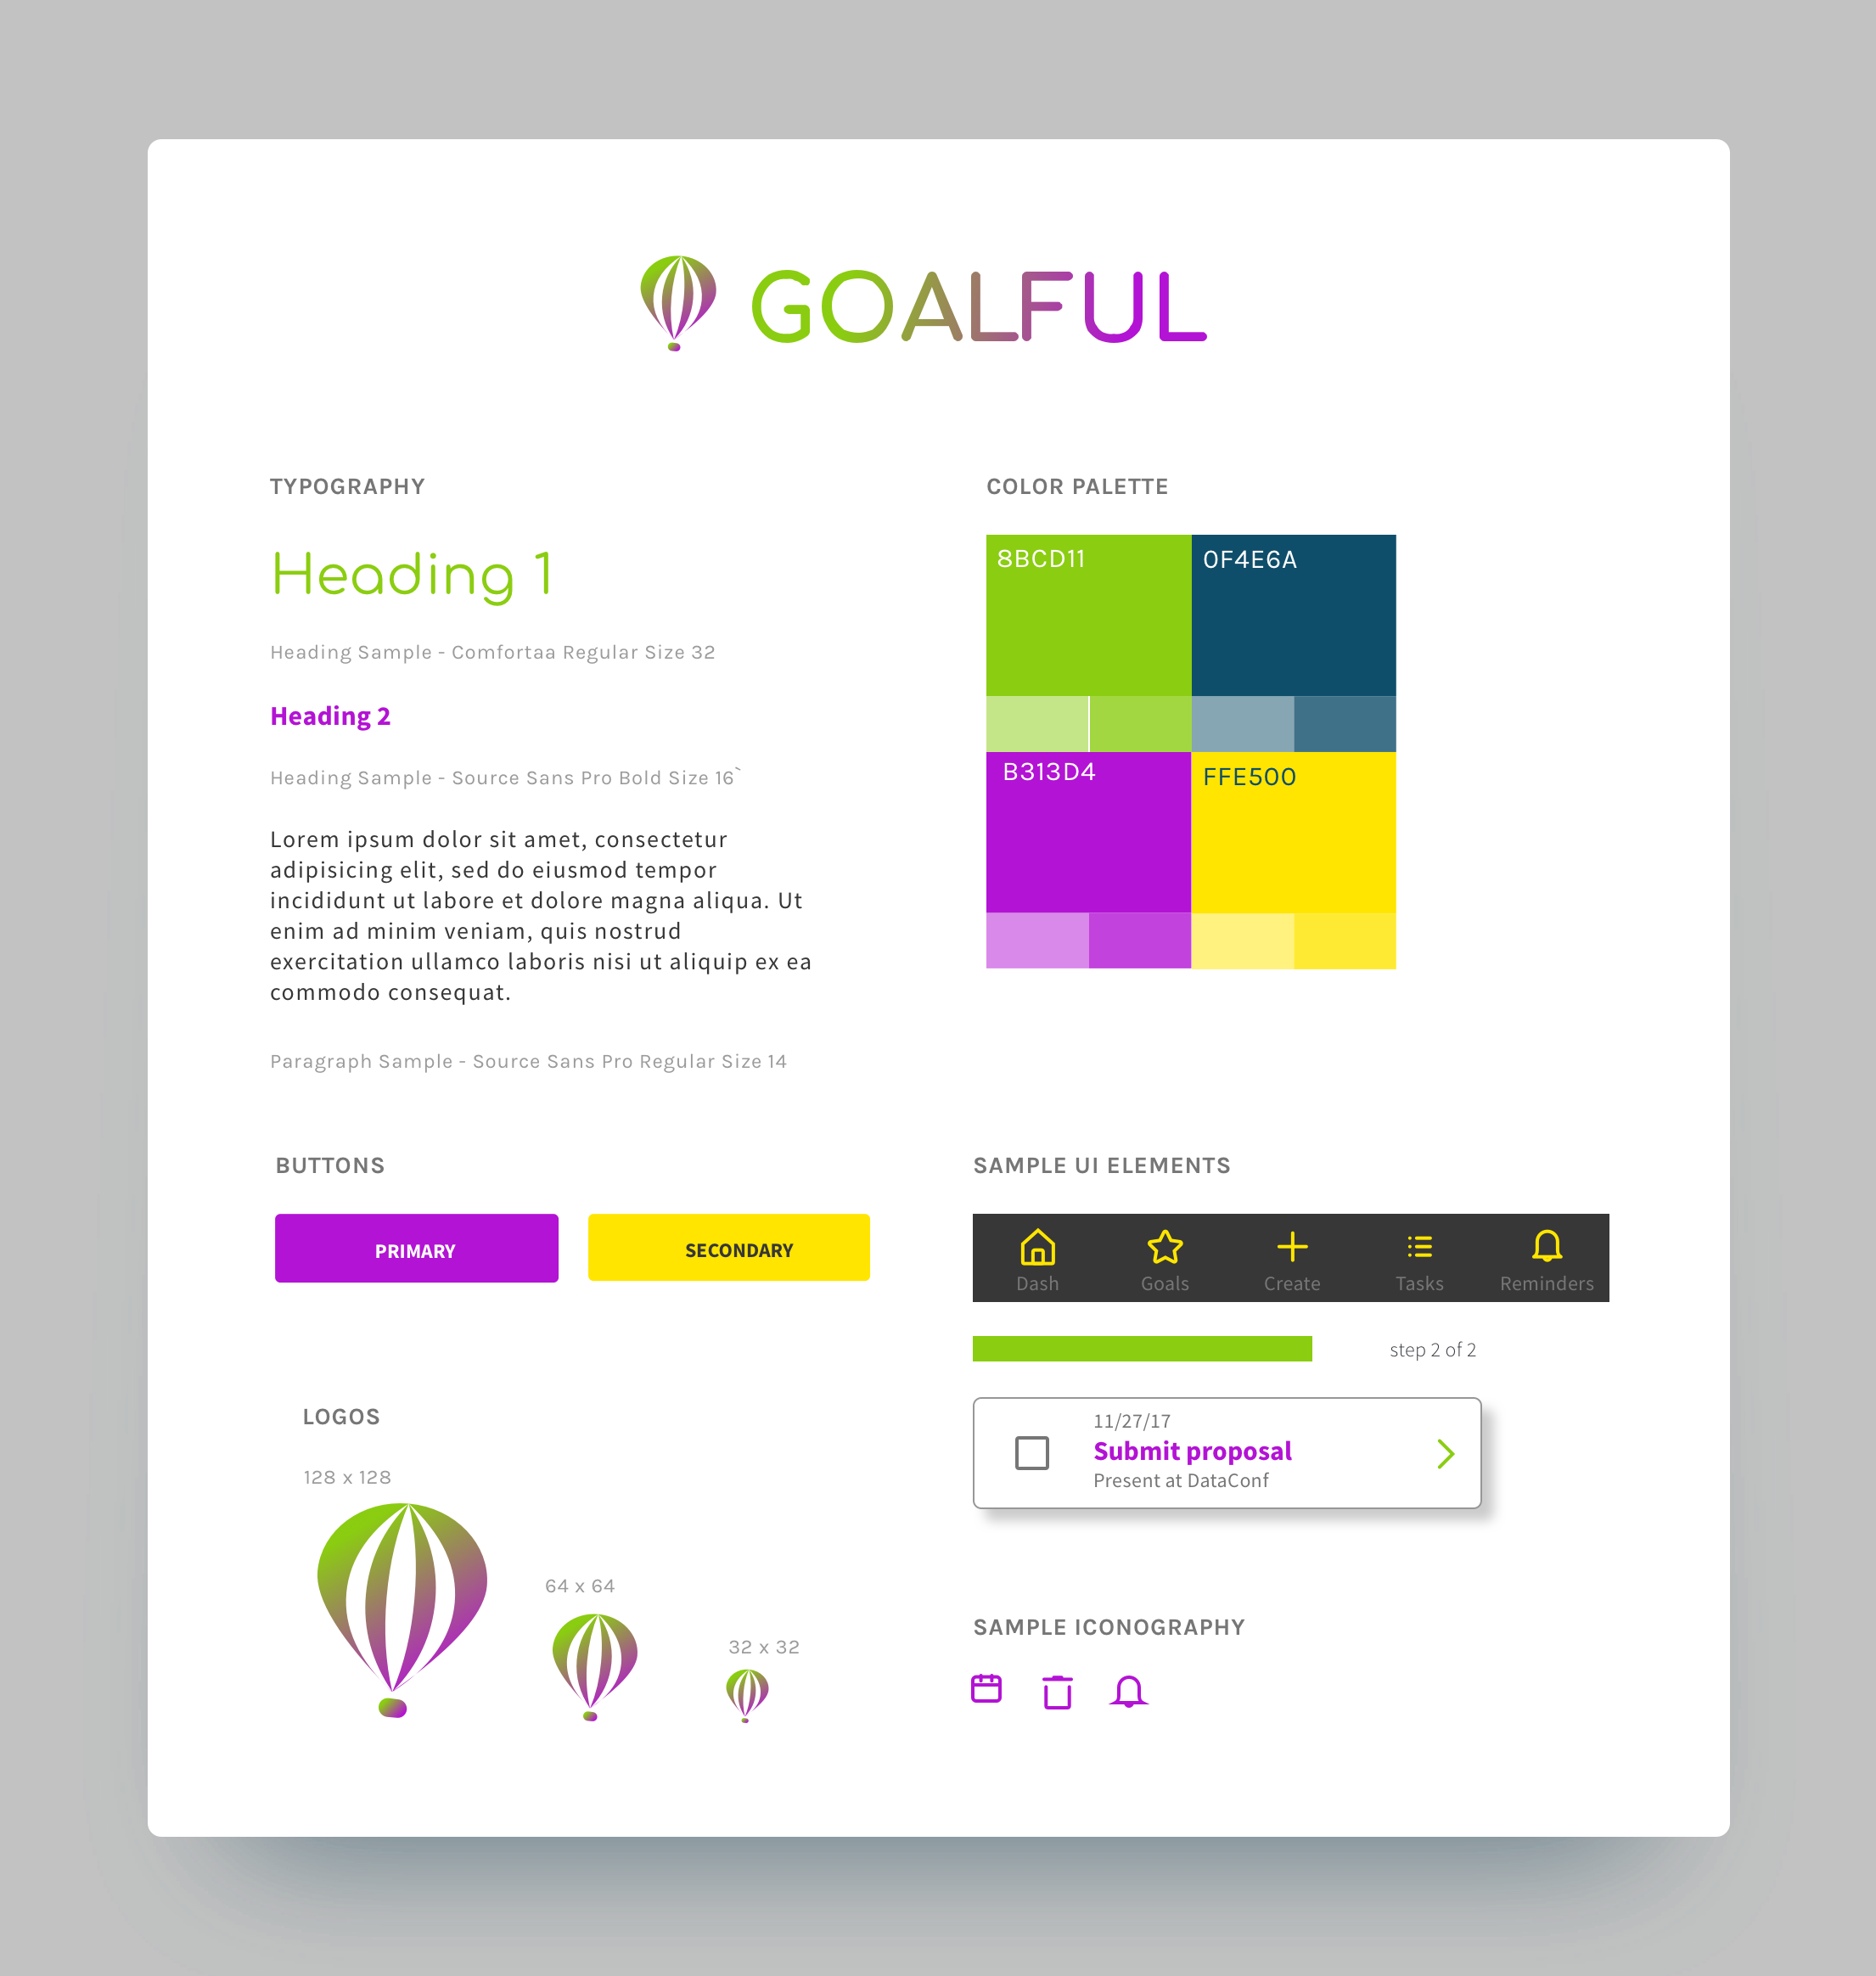 Document demonstrating the proposed logo and wordmark, typography, color palette, and sample icons.